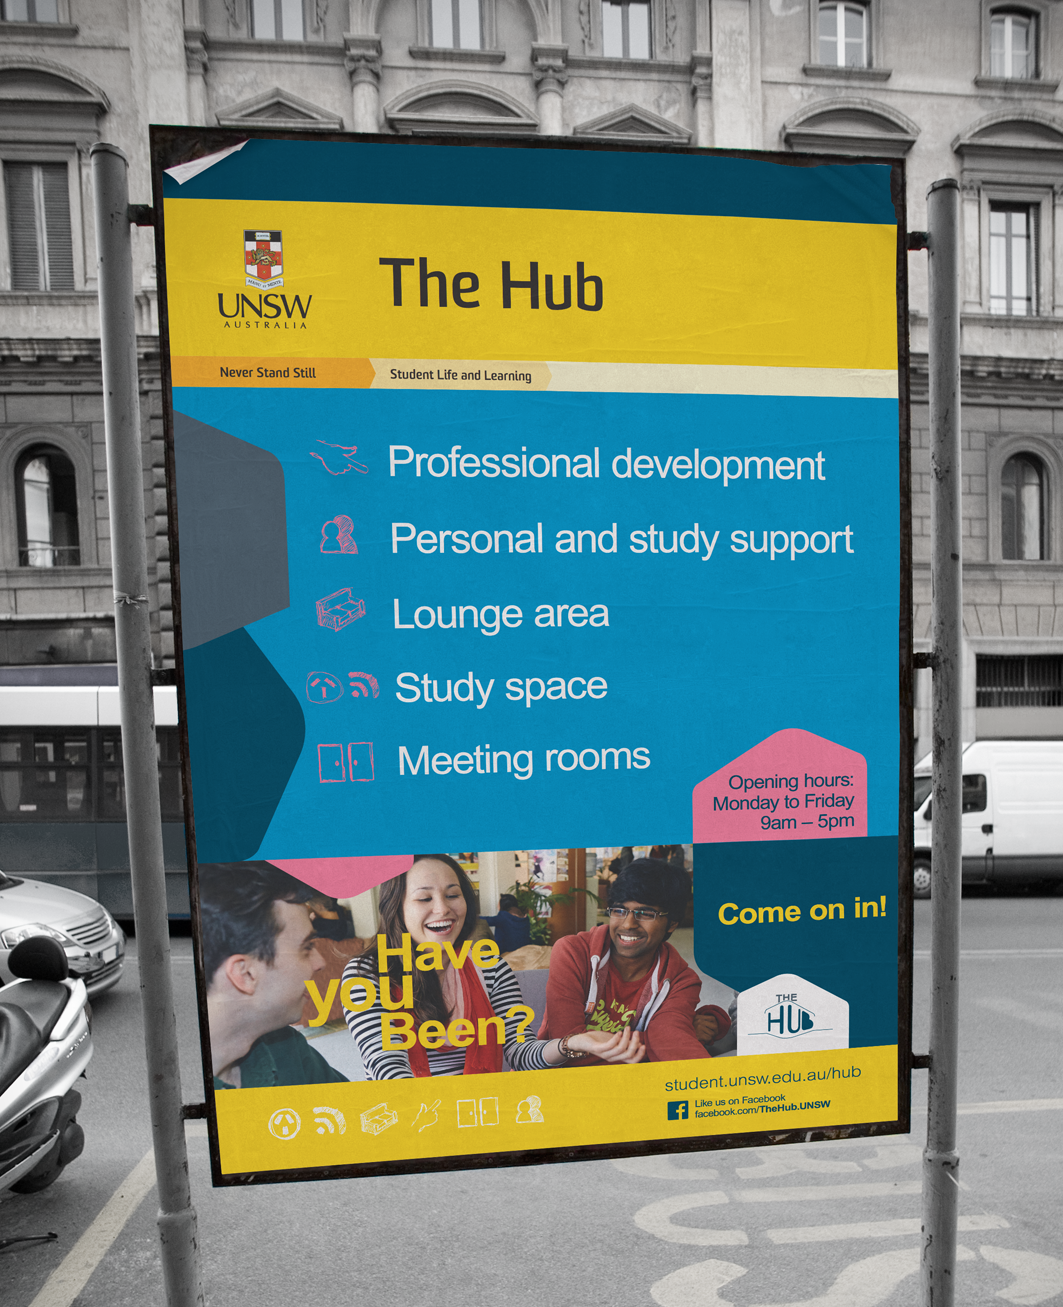 UNSW_TheHub_Poster_01